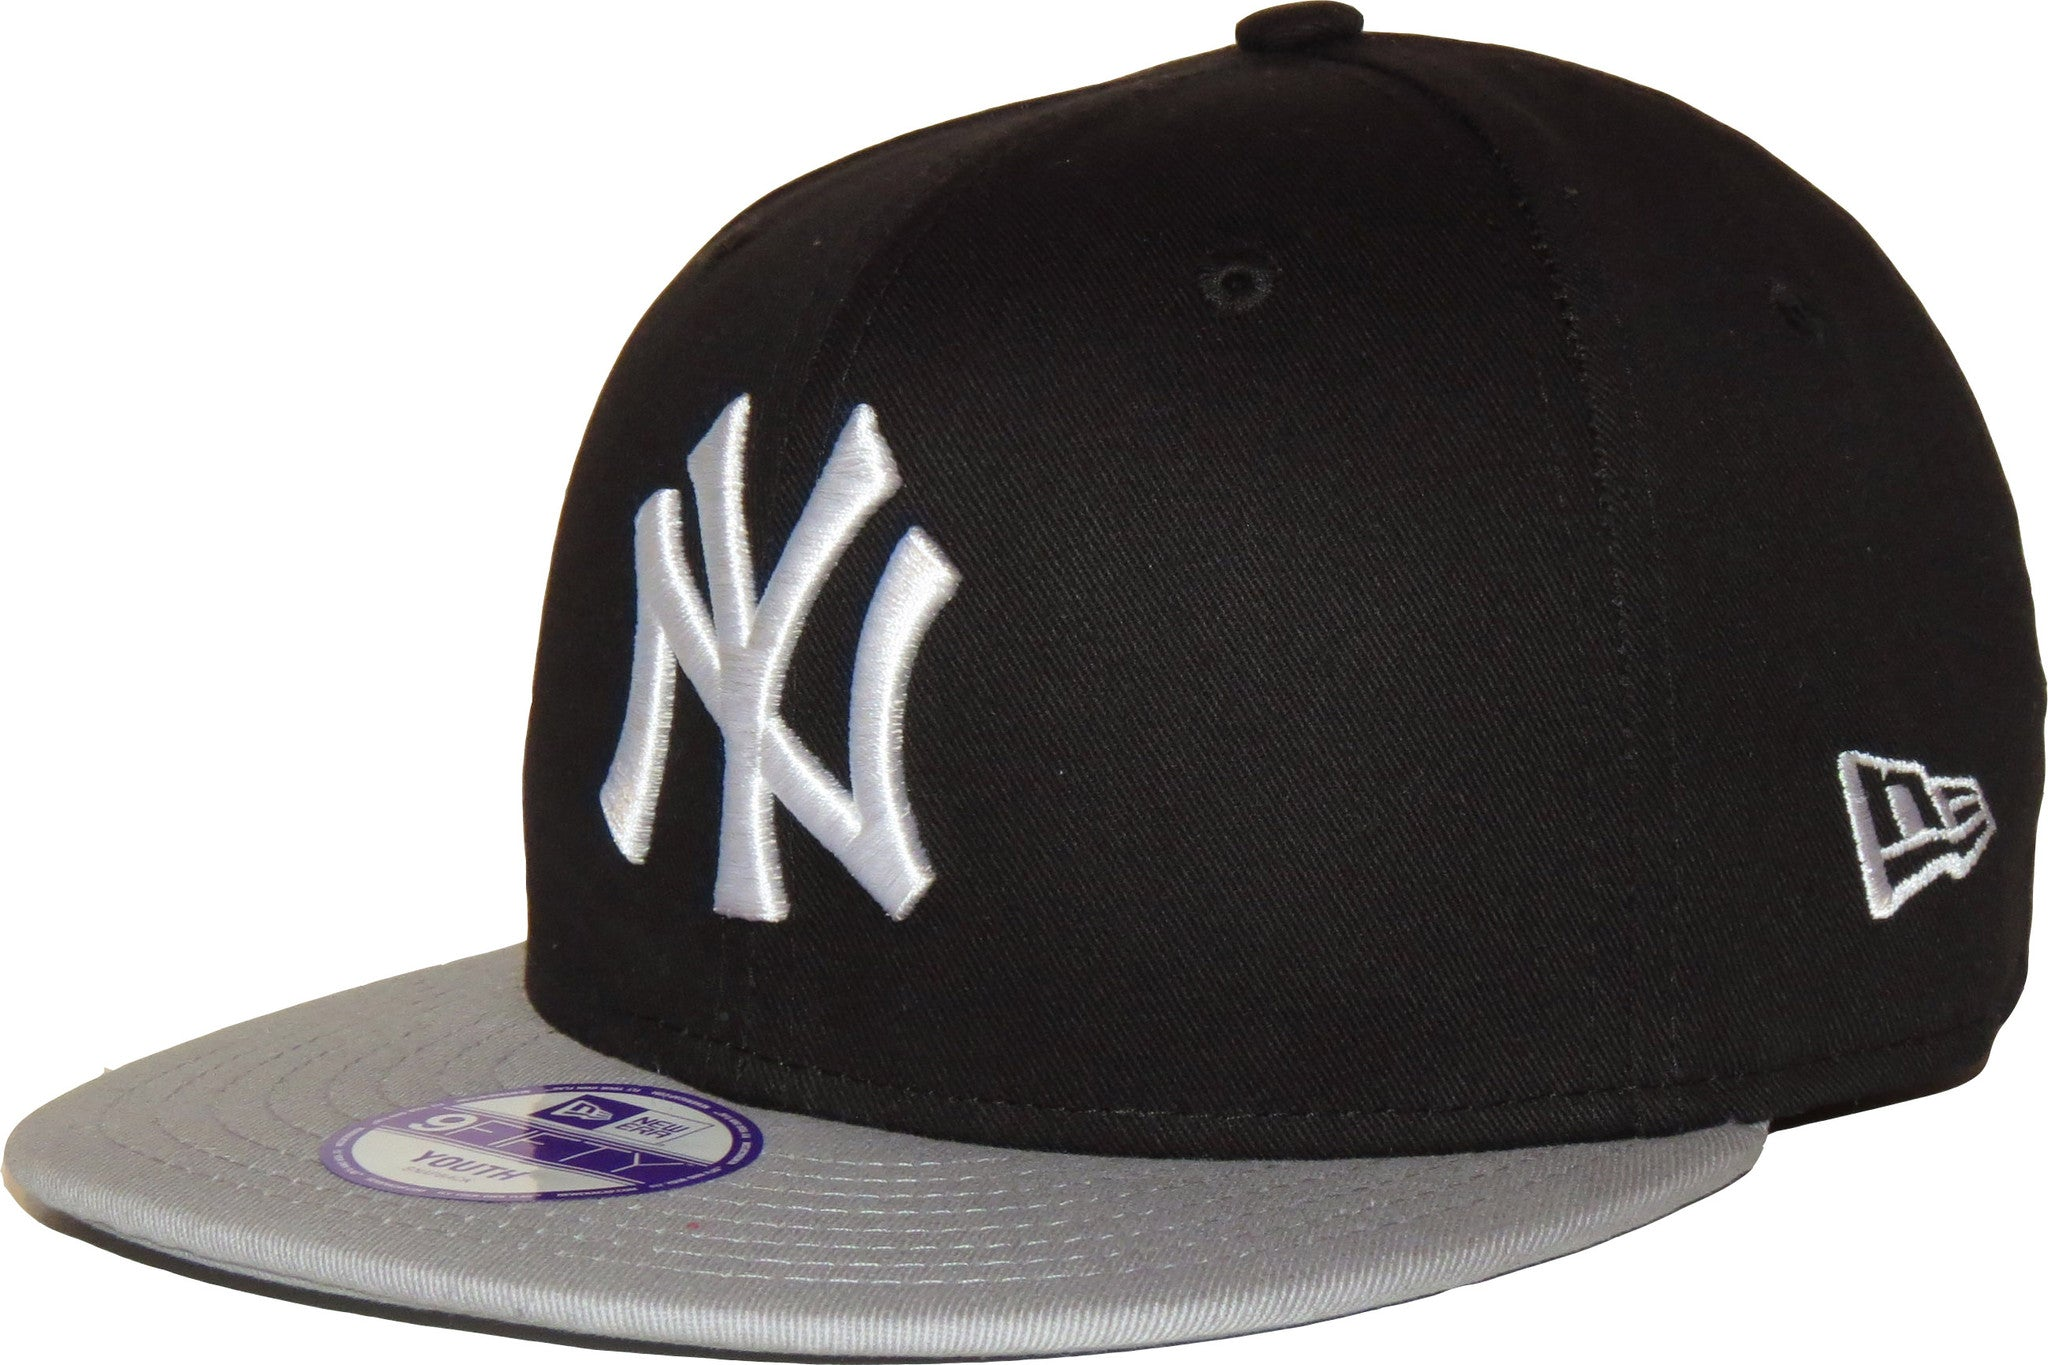 New Era 950 Kids Cotton Block NY Black Grey Snapback Cap (Ages 5 ... c2e6e445b4a5